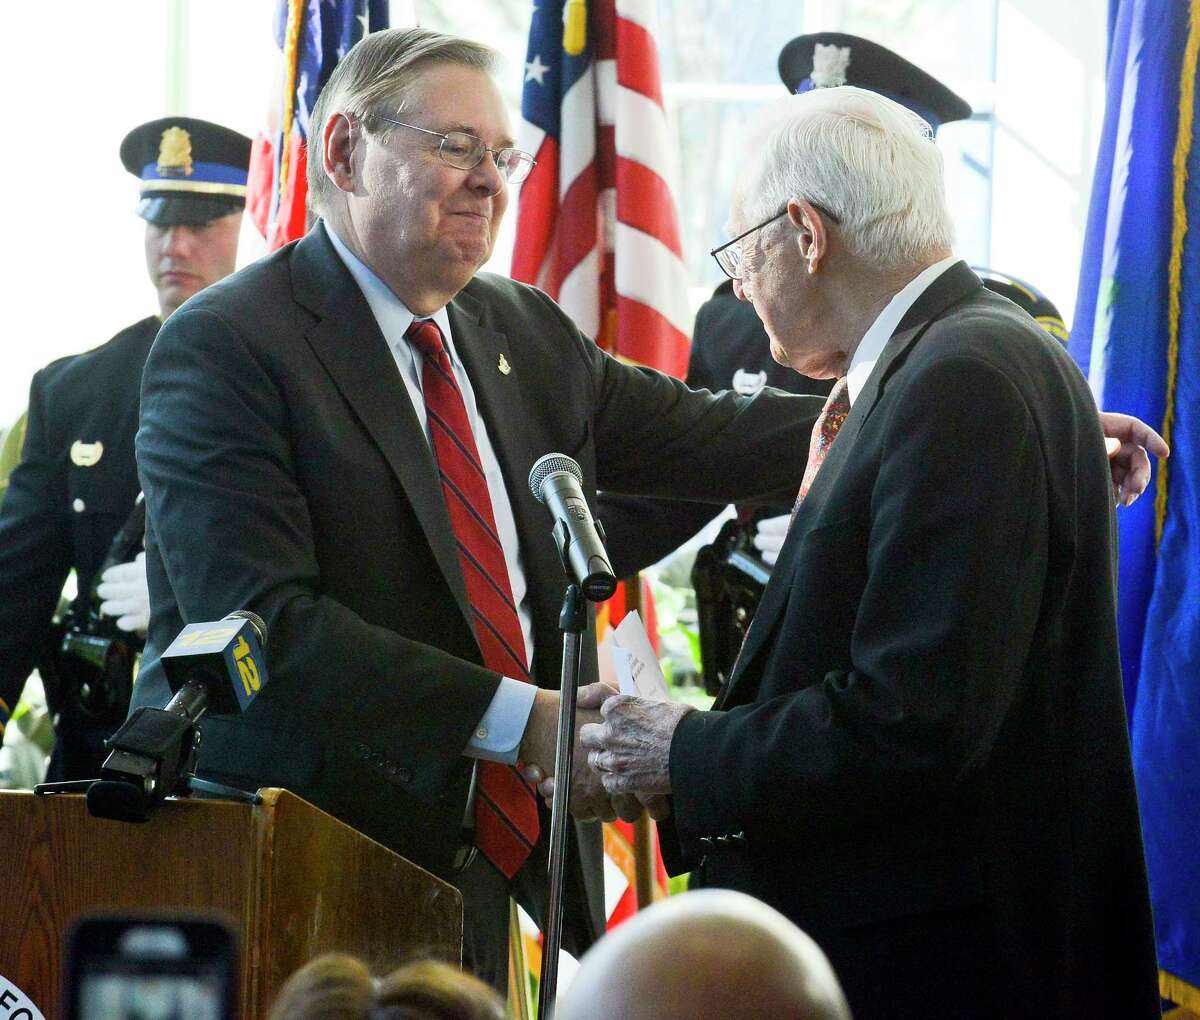 Stamford Mayor David Martin shakes the hand of his father Retired Justice Gene Martin, as he is ceremonially sworn in for his second term to office on Friday, Dec. 1, 2017 in Stamford, Connecticut.